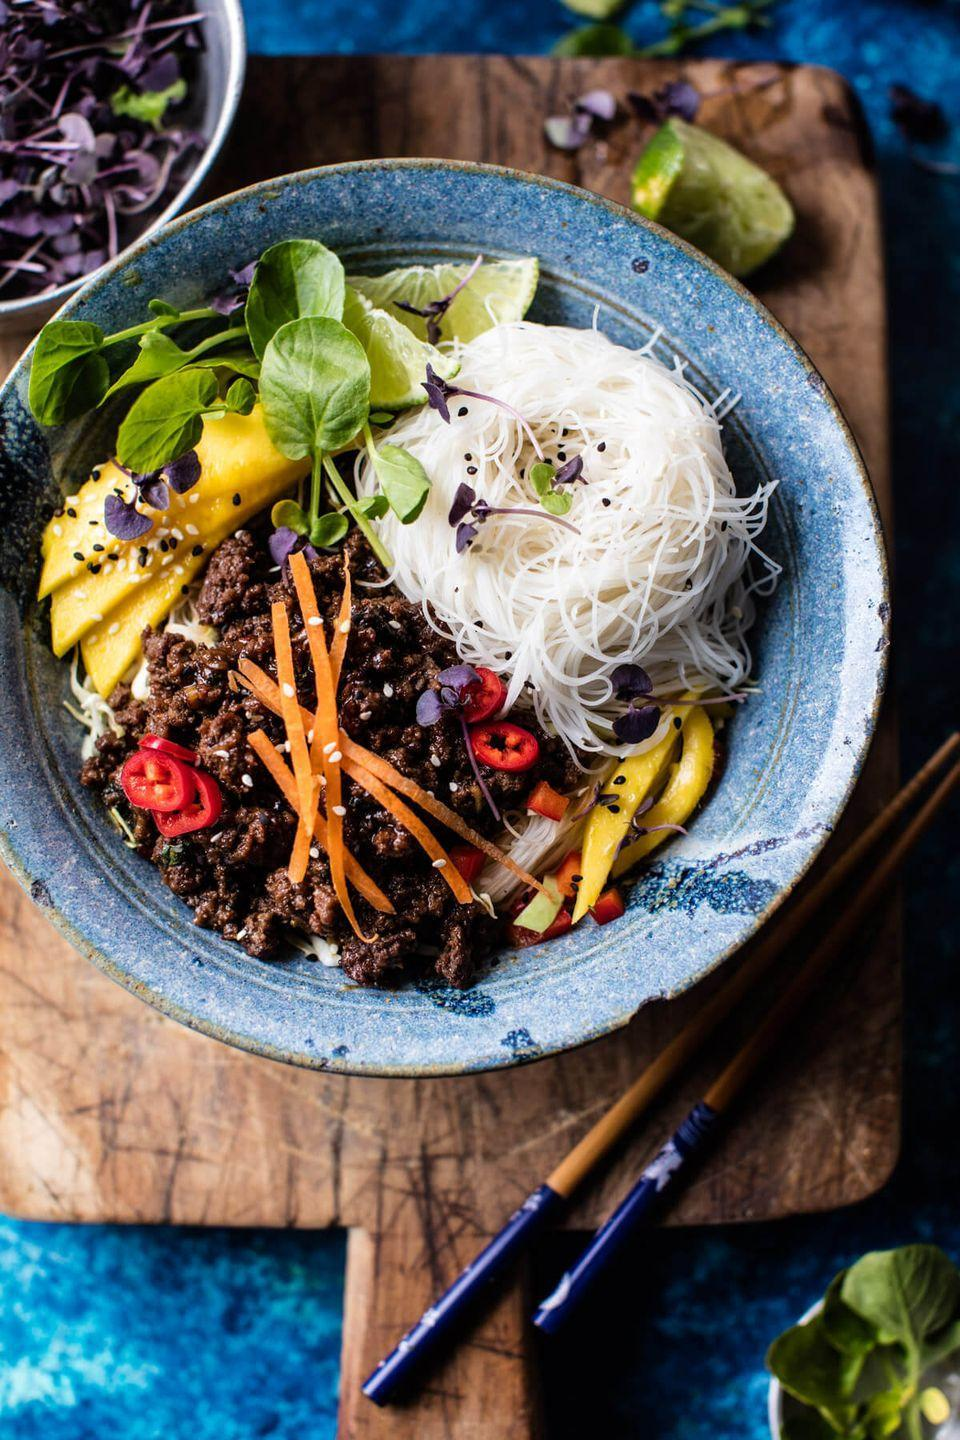 "<p>This quick-and-easy weeknight meal takes just 30 minutes but eats like a feast.</p><p><em><a href=""https://www.halfbakedharvest.com/30-minute-asian-basil-beef-mango-noodle-salad/"" rel=""nofollow noopener"" target=""_blank"" data-ylk=""slk:Get the recipe from Half Baked Harvest »"" class=""link rapid-noclick-resp"">Get the recipe from Half Baked Harvest »</a></em></p>"